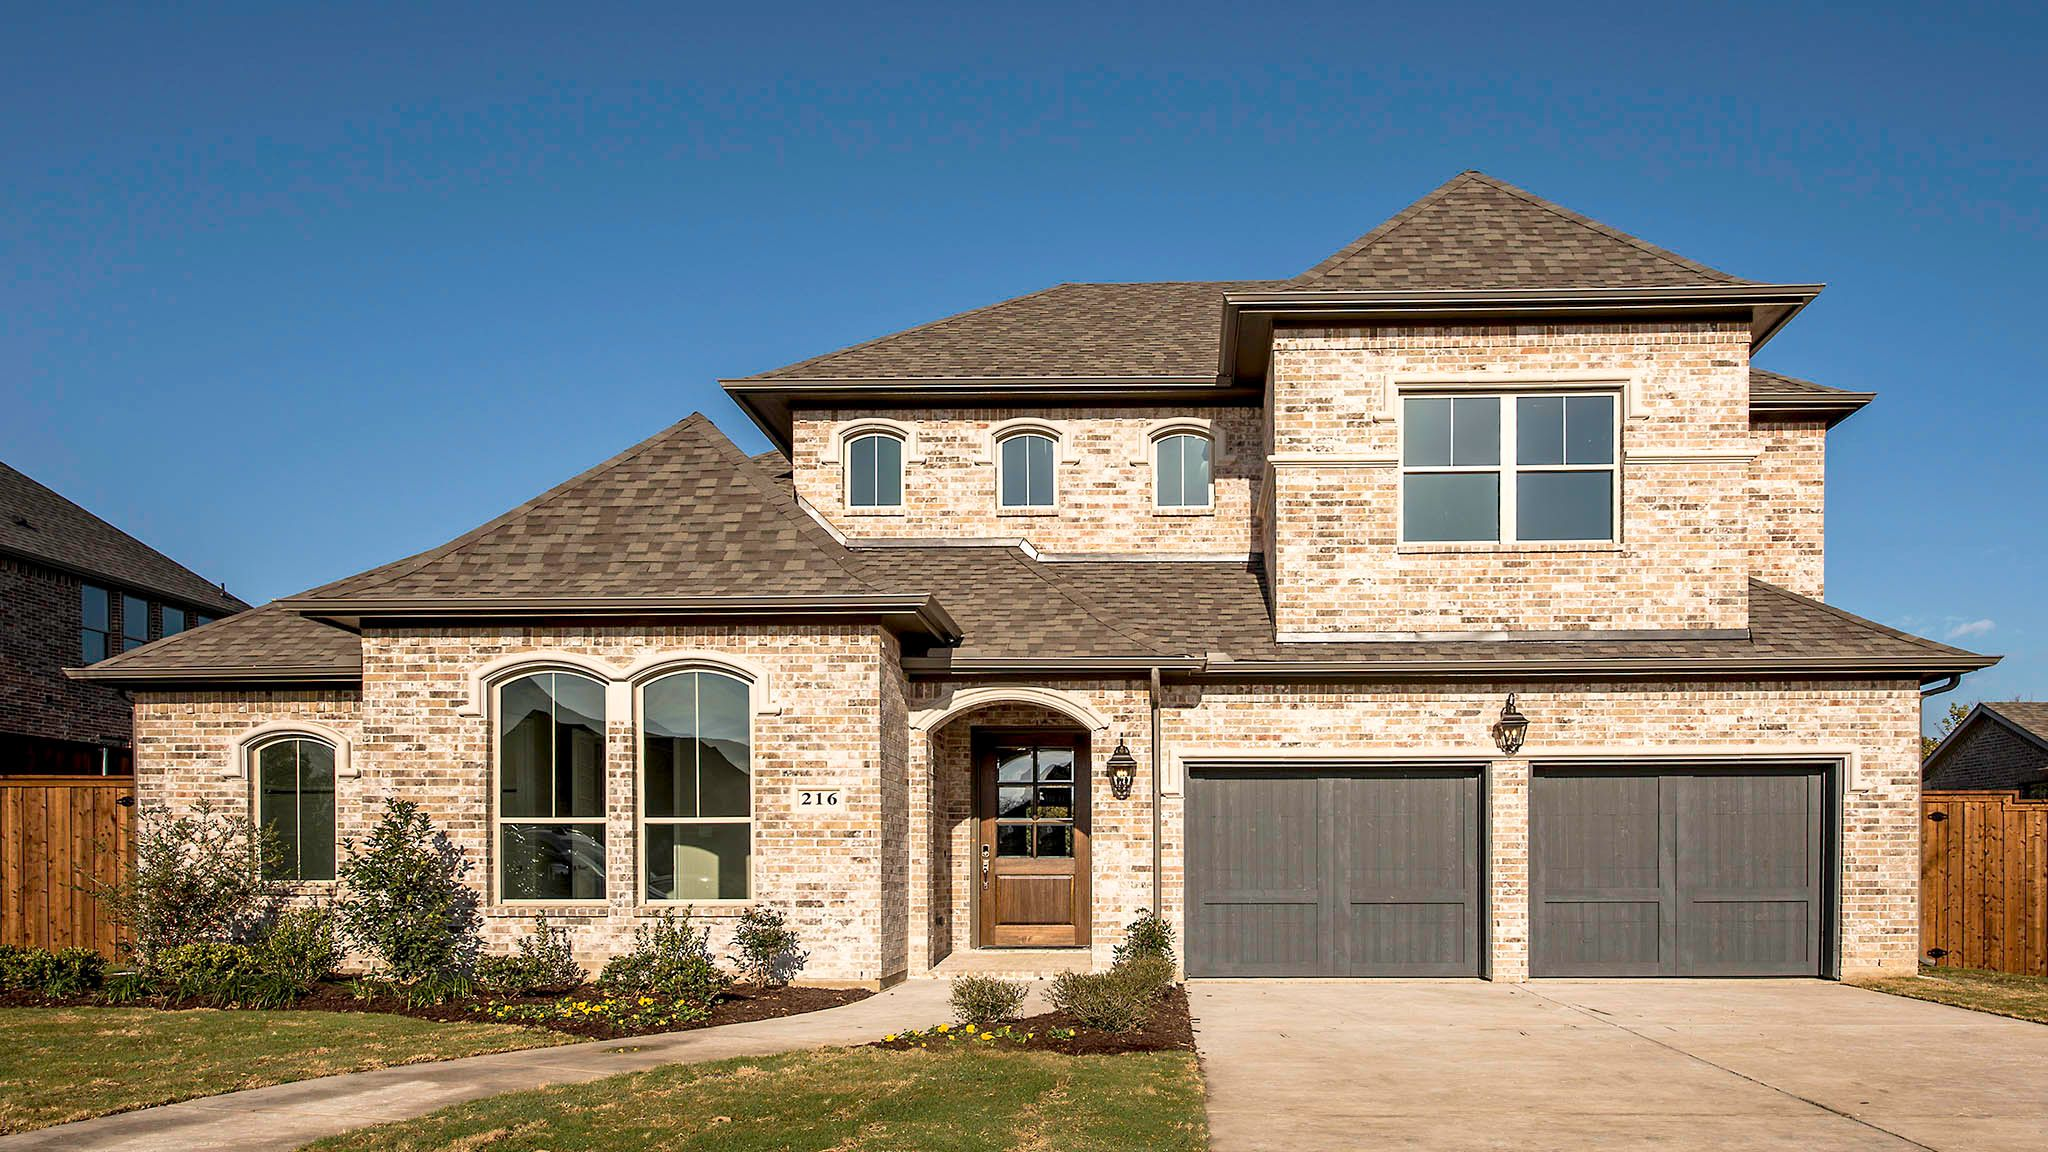 Single Family for Sale at 524a 216 Chisholm Trail Highland Village, Texas 75077 United States